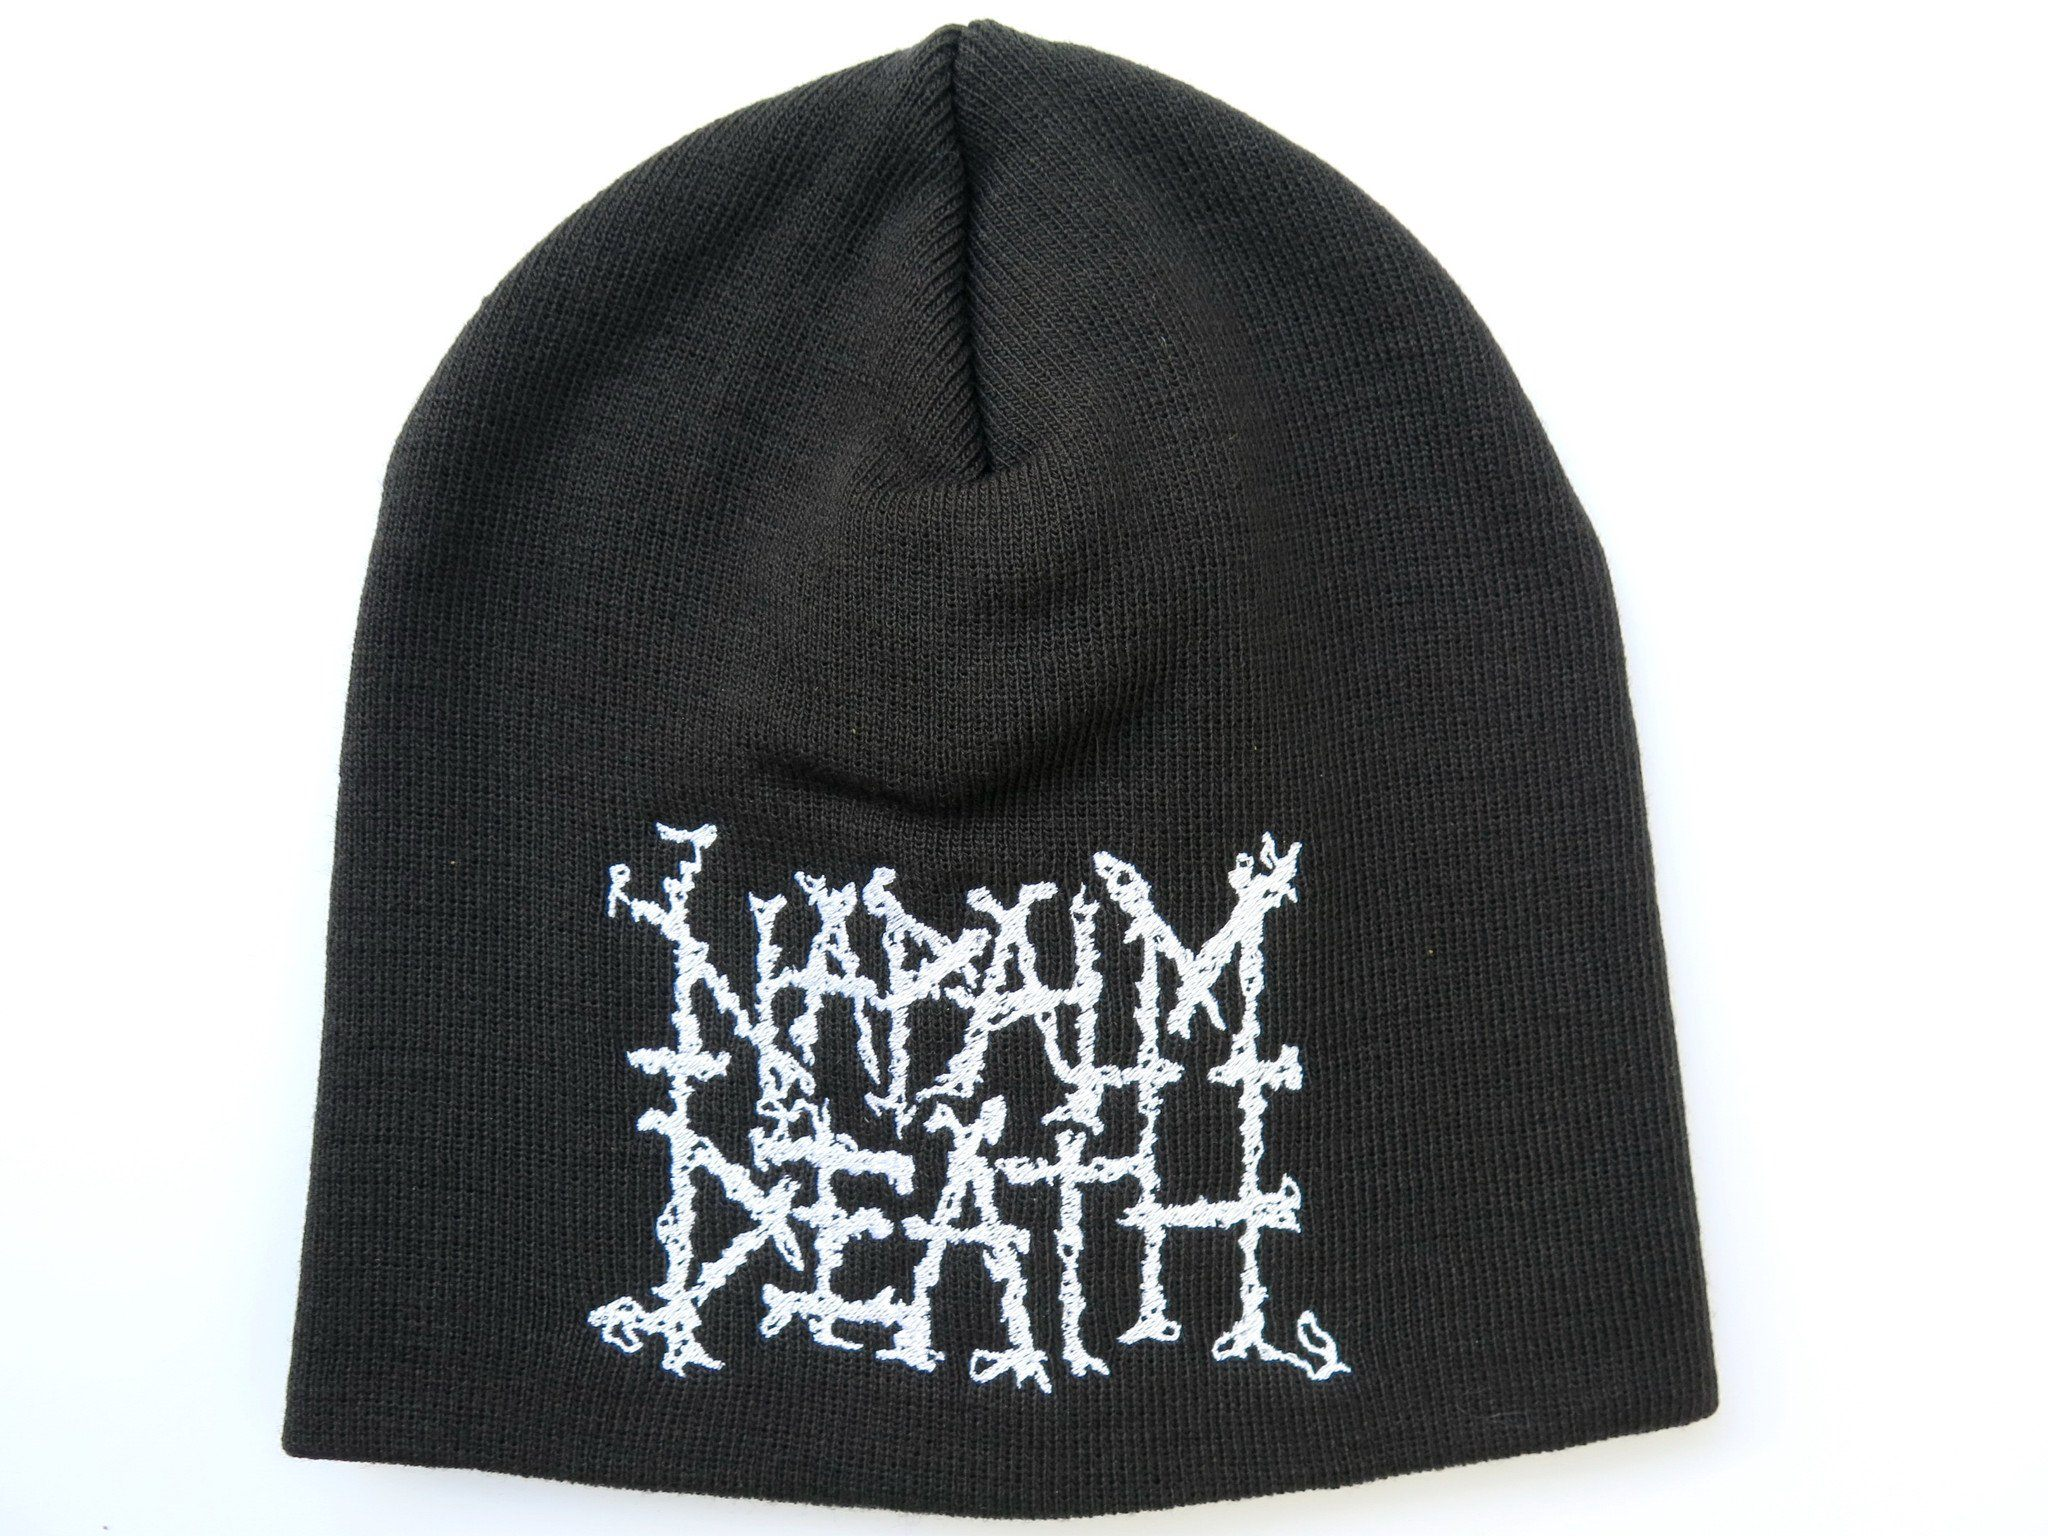 NAPALM DEATH Logo Winter Wool Beanie Hat BNWT - A Patch E Store